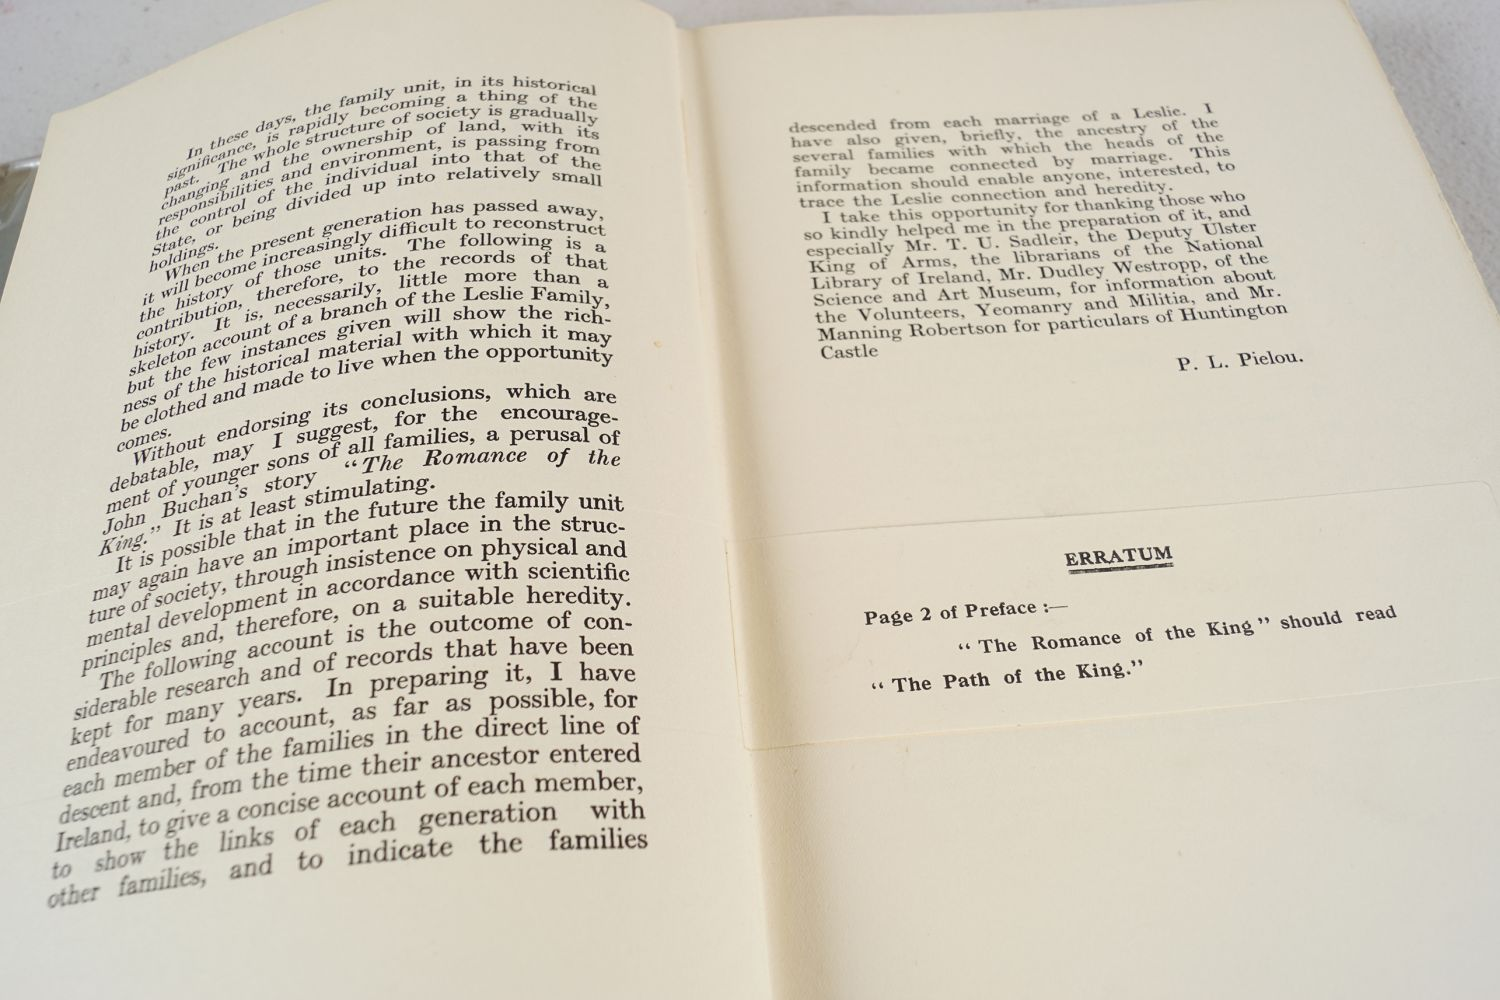 BOOK: THE LESLIES OF TARBERT CO. KERRY - Image 6 of 7